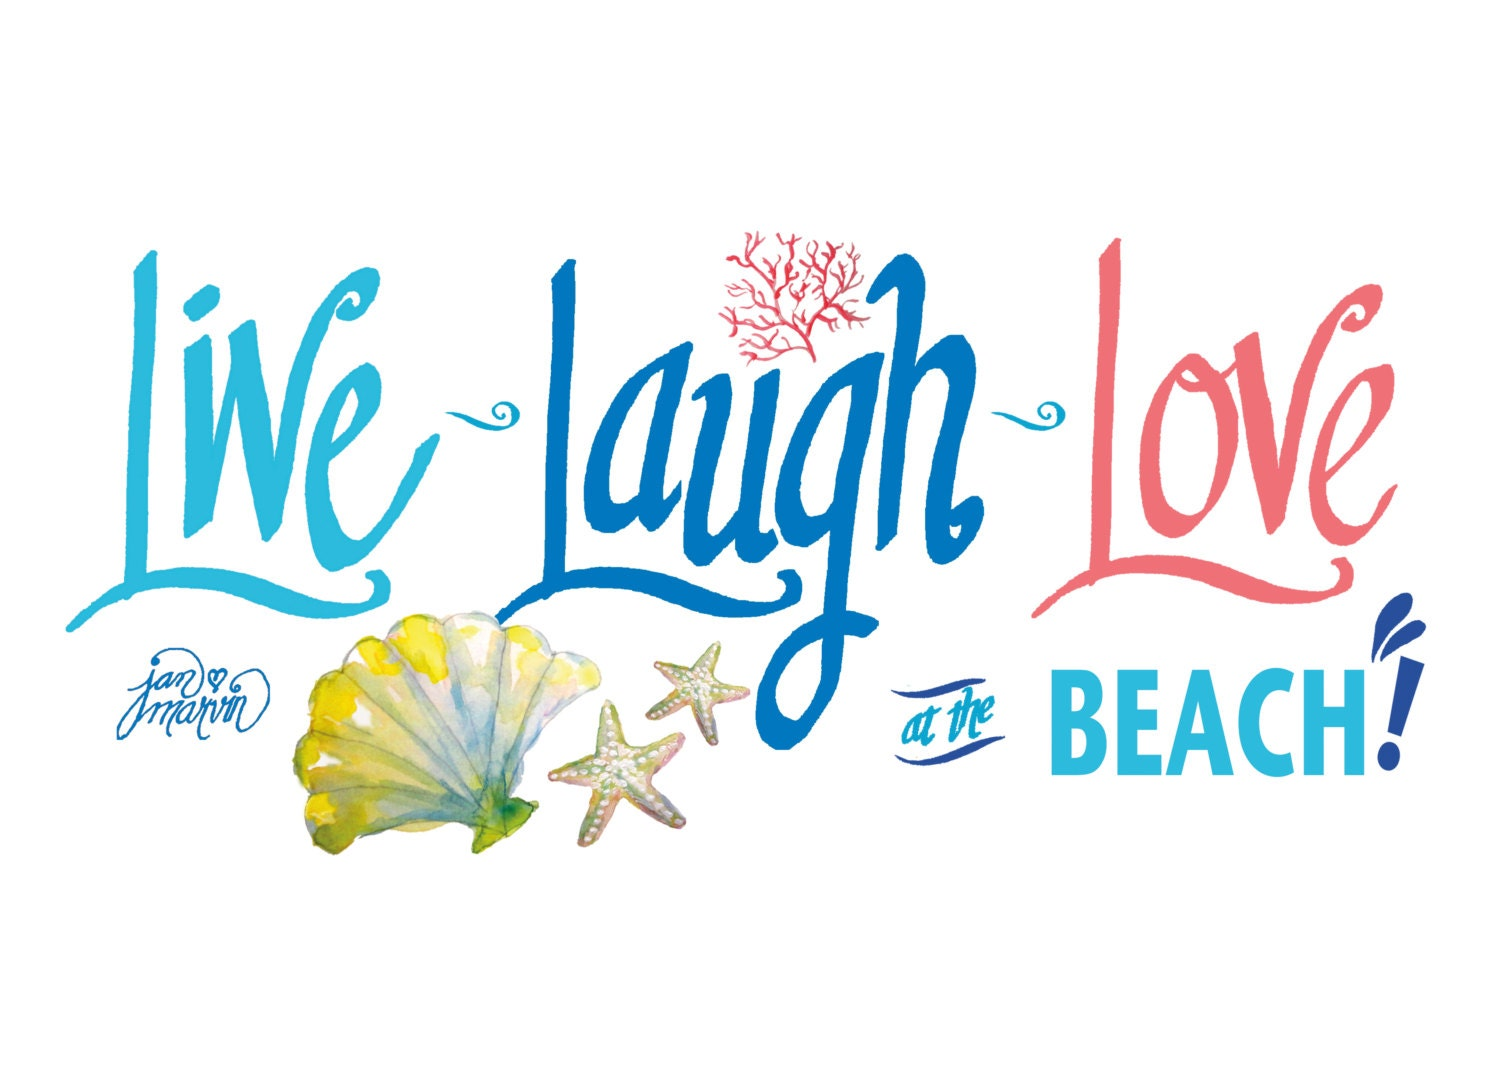 Live Laugh Love At The Beach Quote Art Print With Shells And